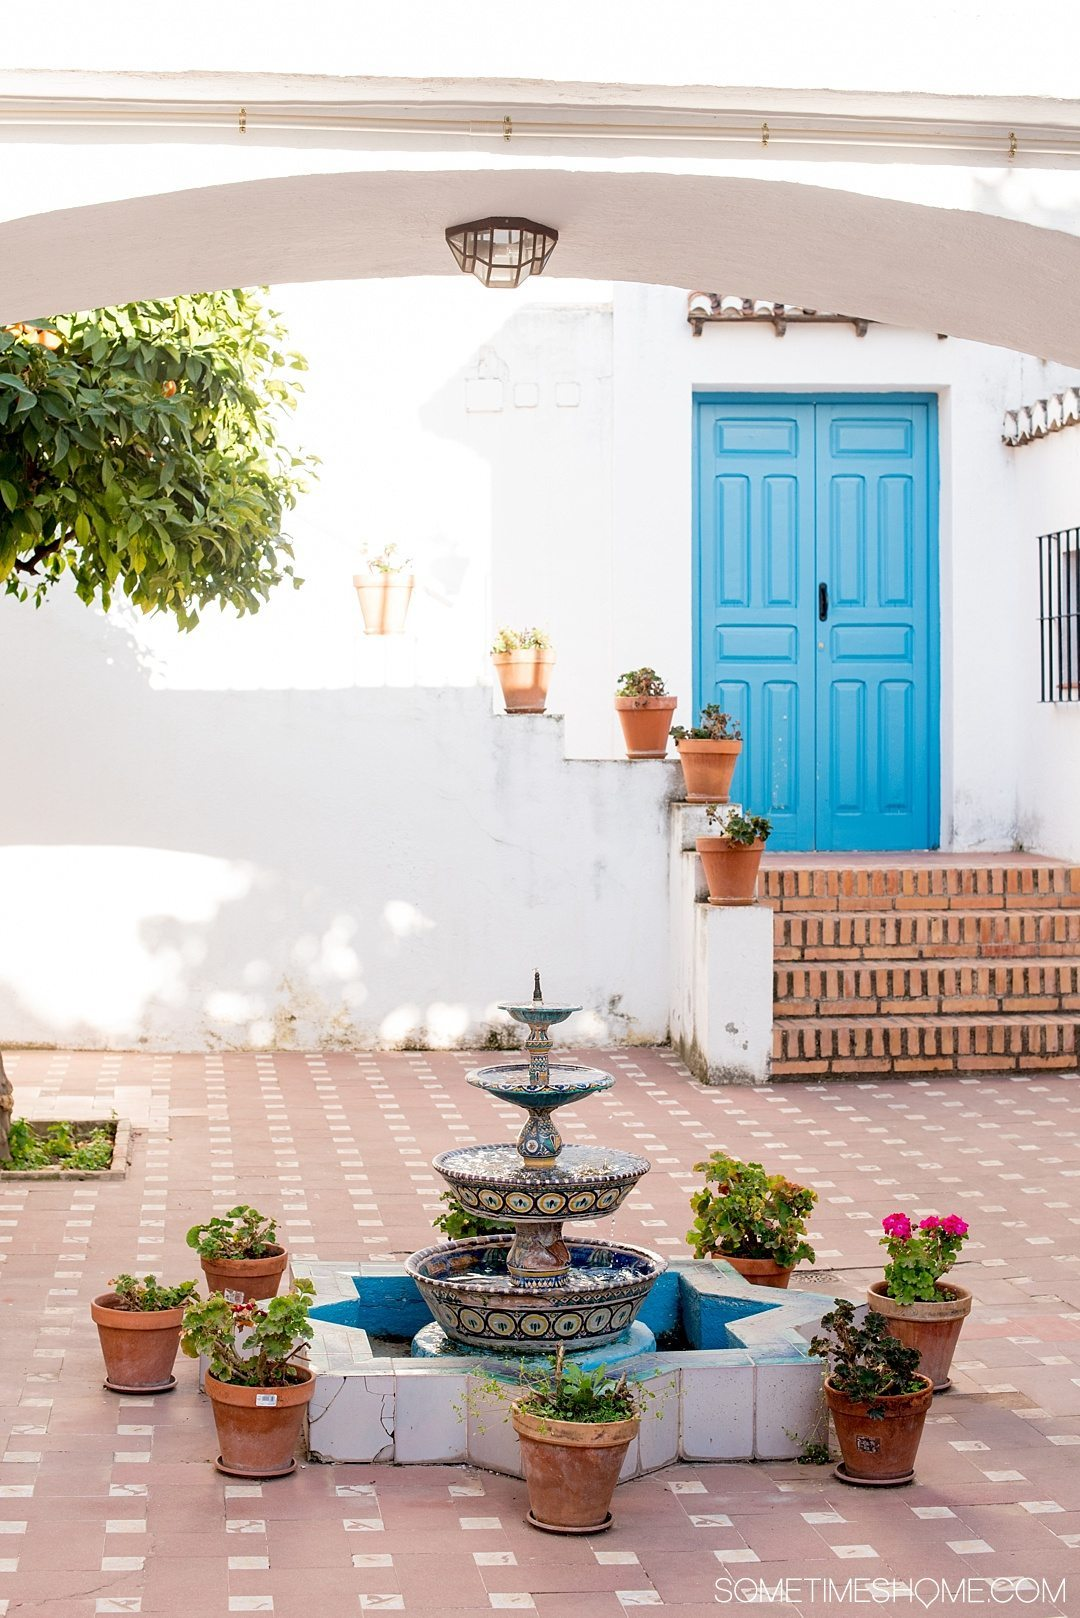 One Perfect Day in Granada Spain. Photos and itinerary on Sometimes Home travel blog. Picture of Casa Museo Max Moreau.